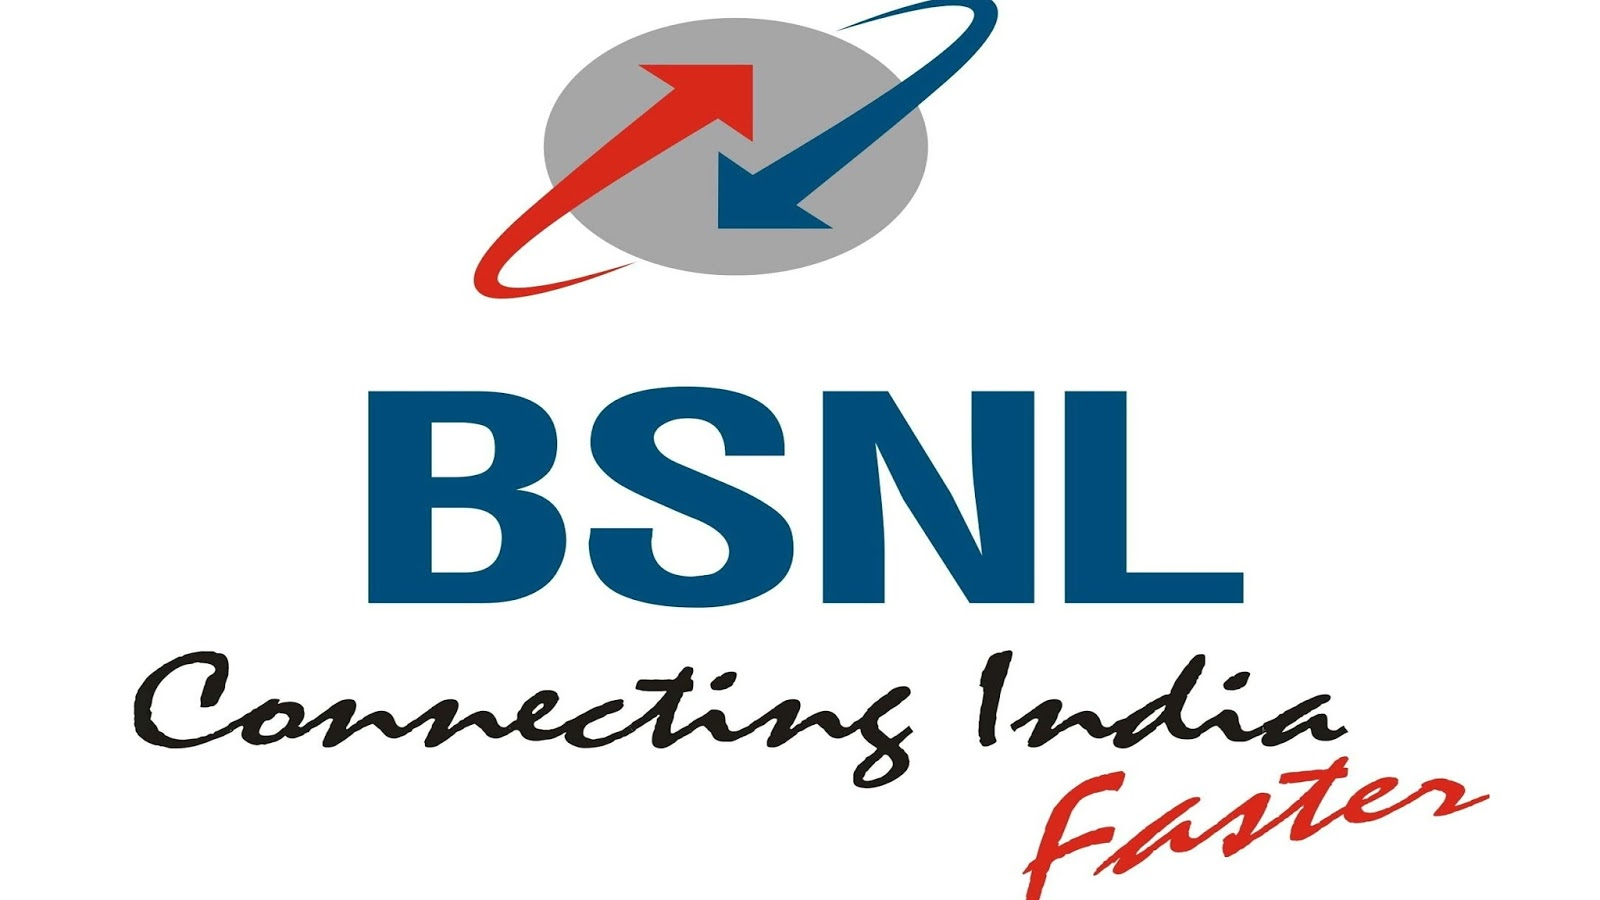 BSNL planning to launch 4G service in Kerala by March 2017 ...